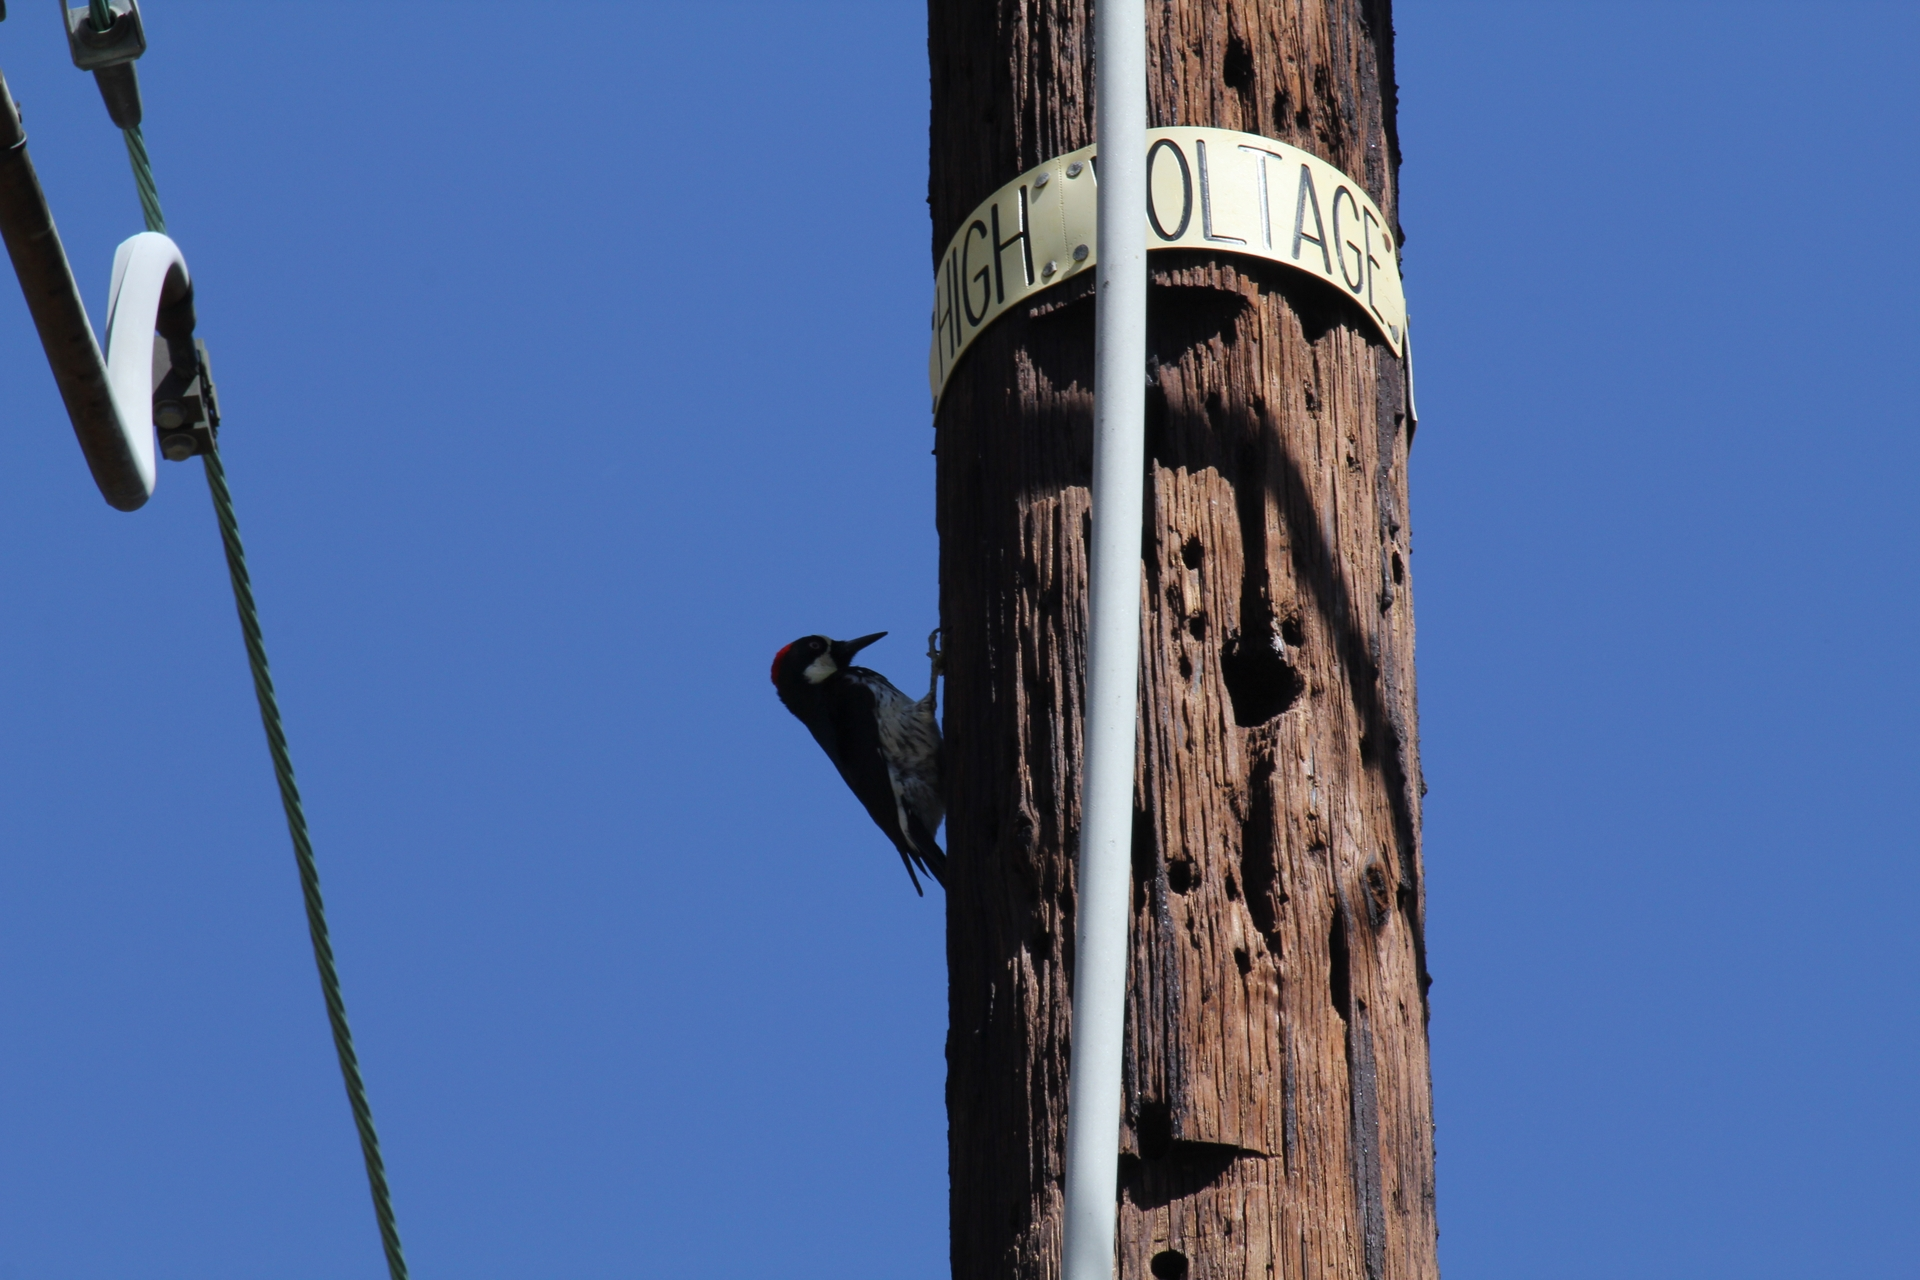 SCE's wooden poles are sometimes used as a home, breeding ground and even food storage facility for the California native acorn woodpecker.